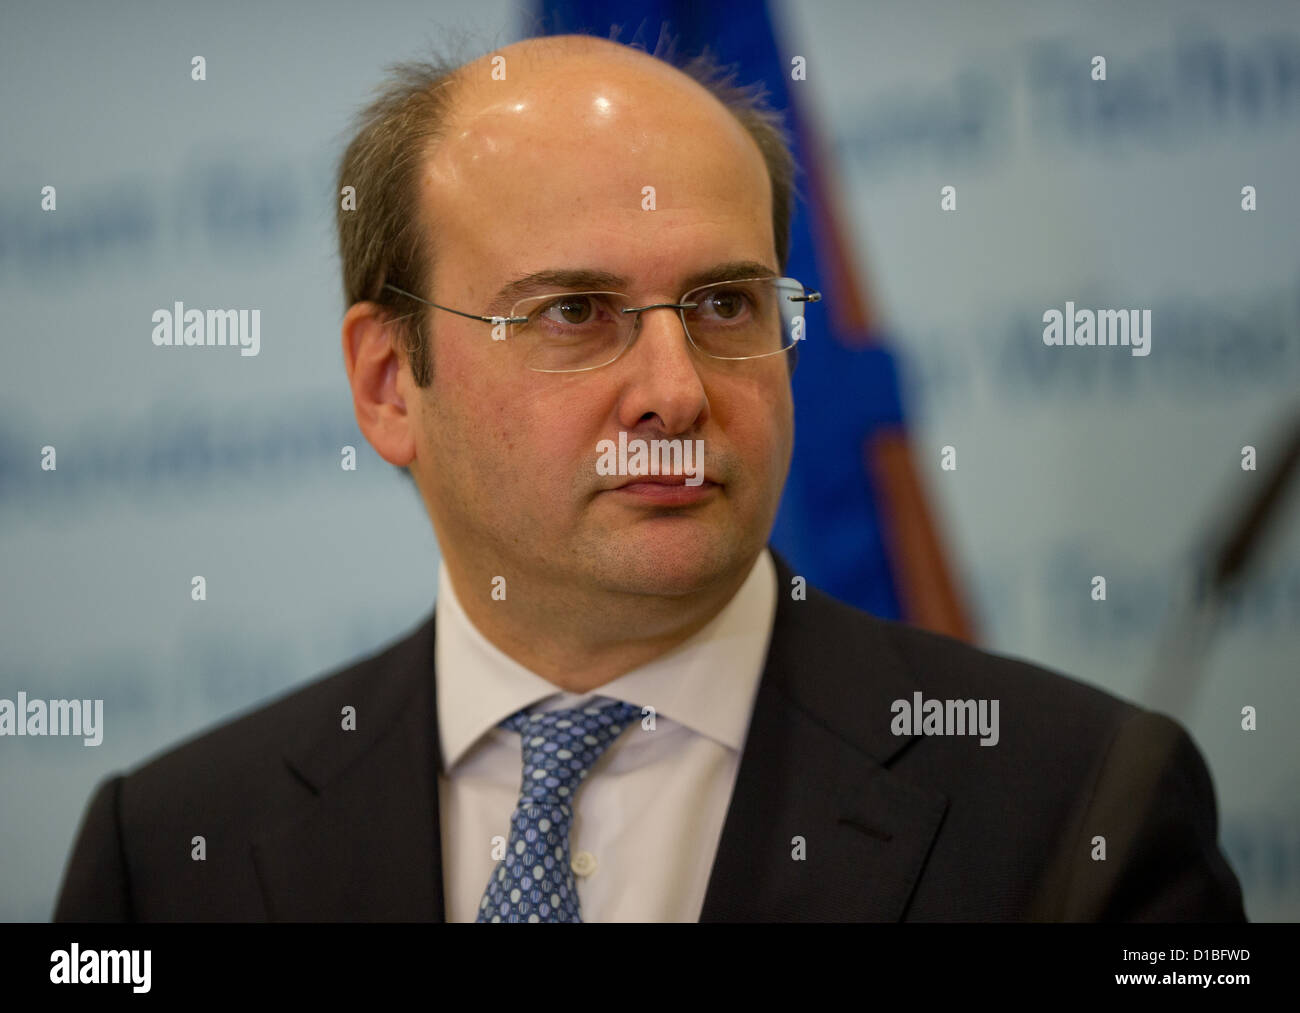 Greek Economy Minister Konstantinos Chatzidakis gives a press conference in Berlin, Germany, 13 December 2012. Photo: - Stock Image